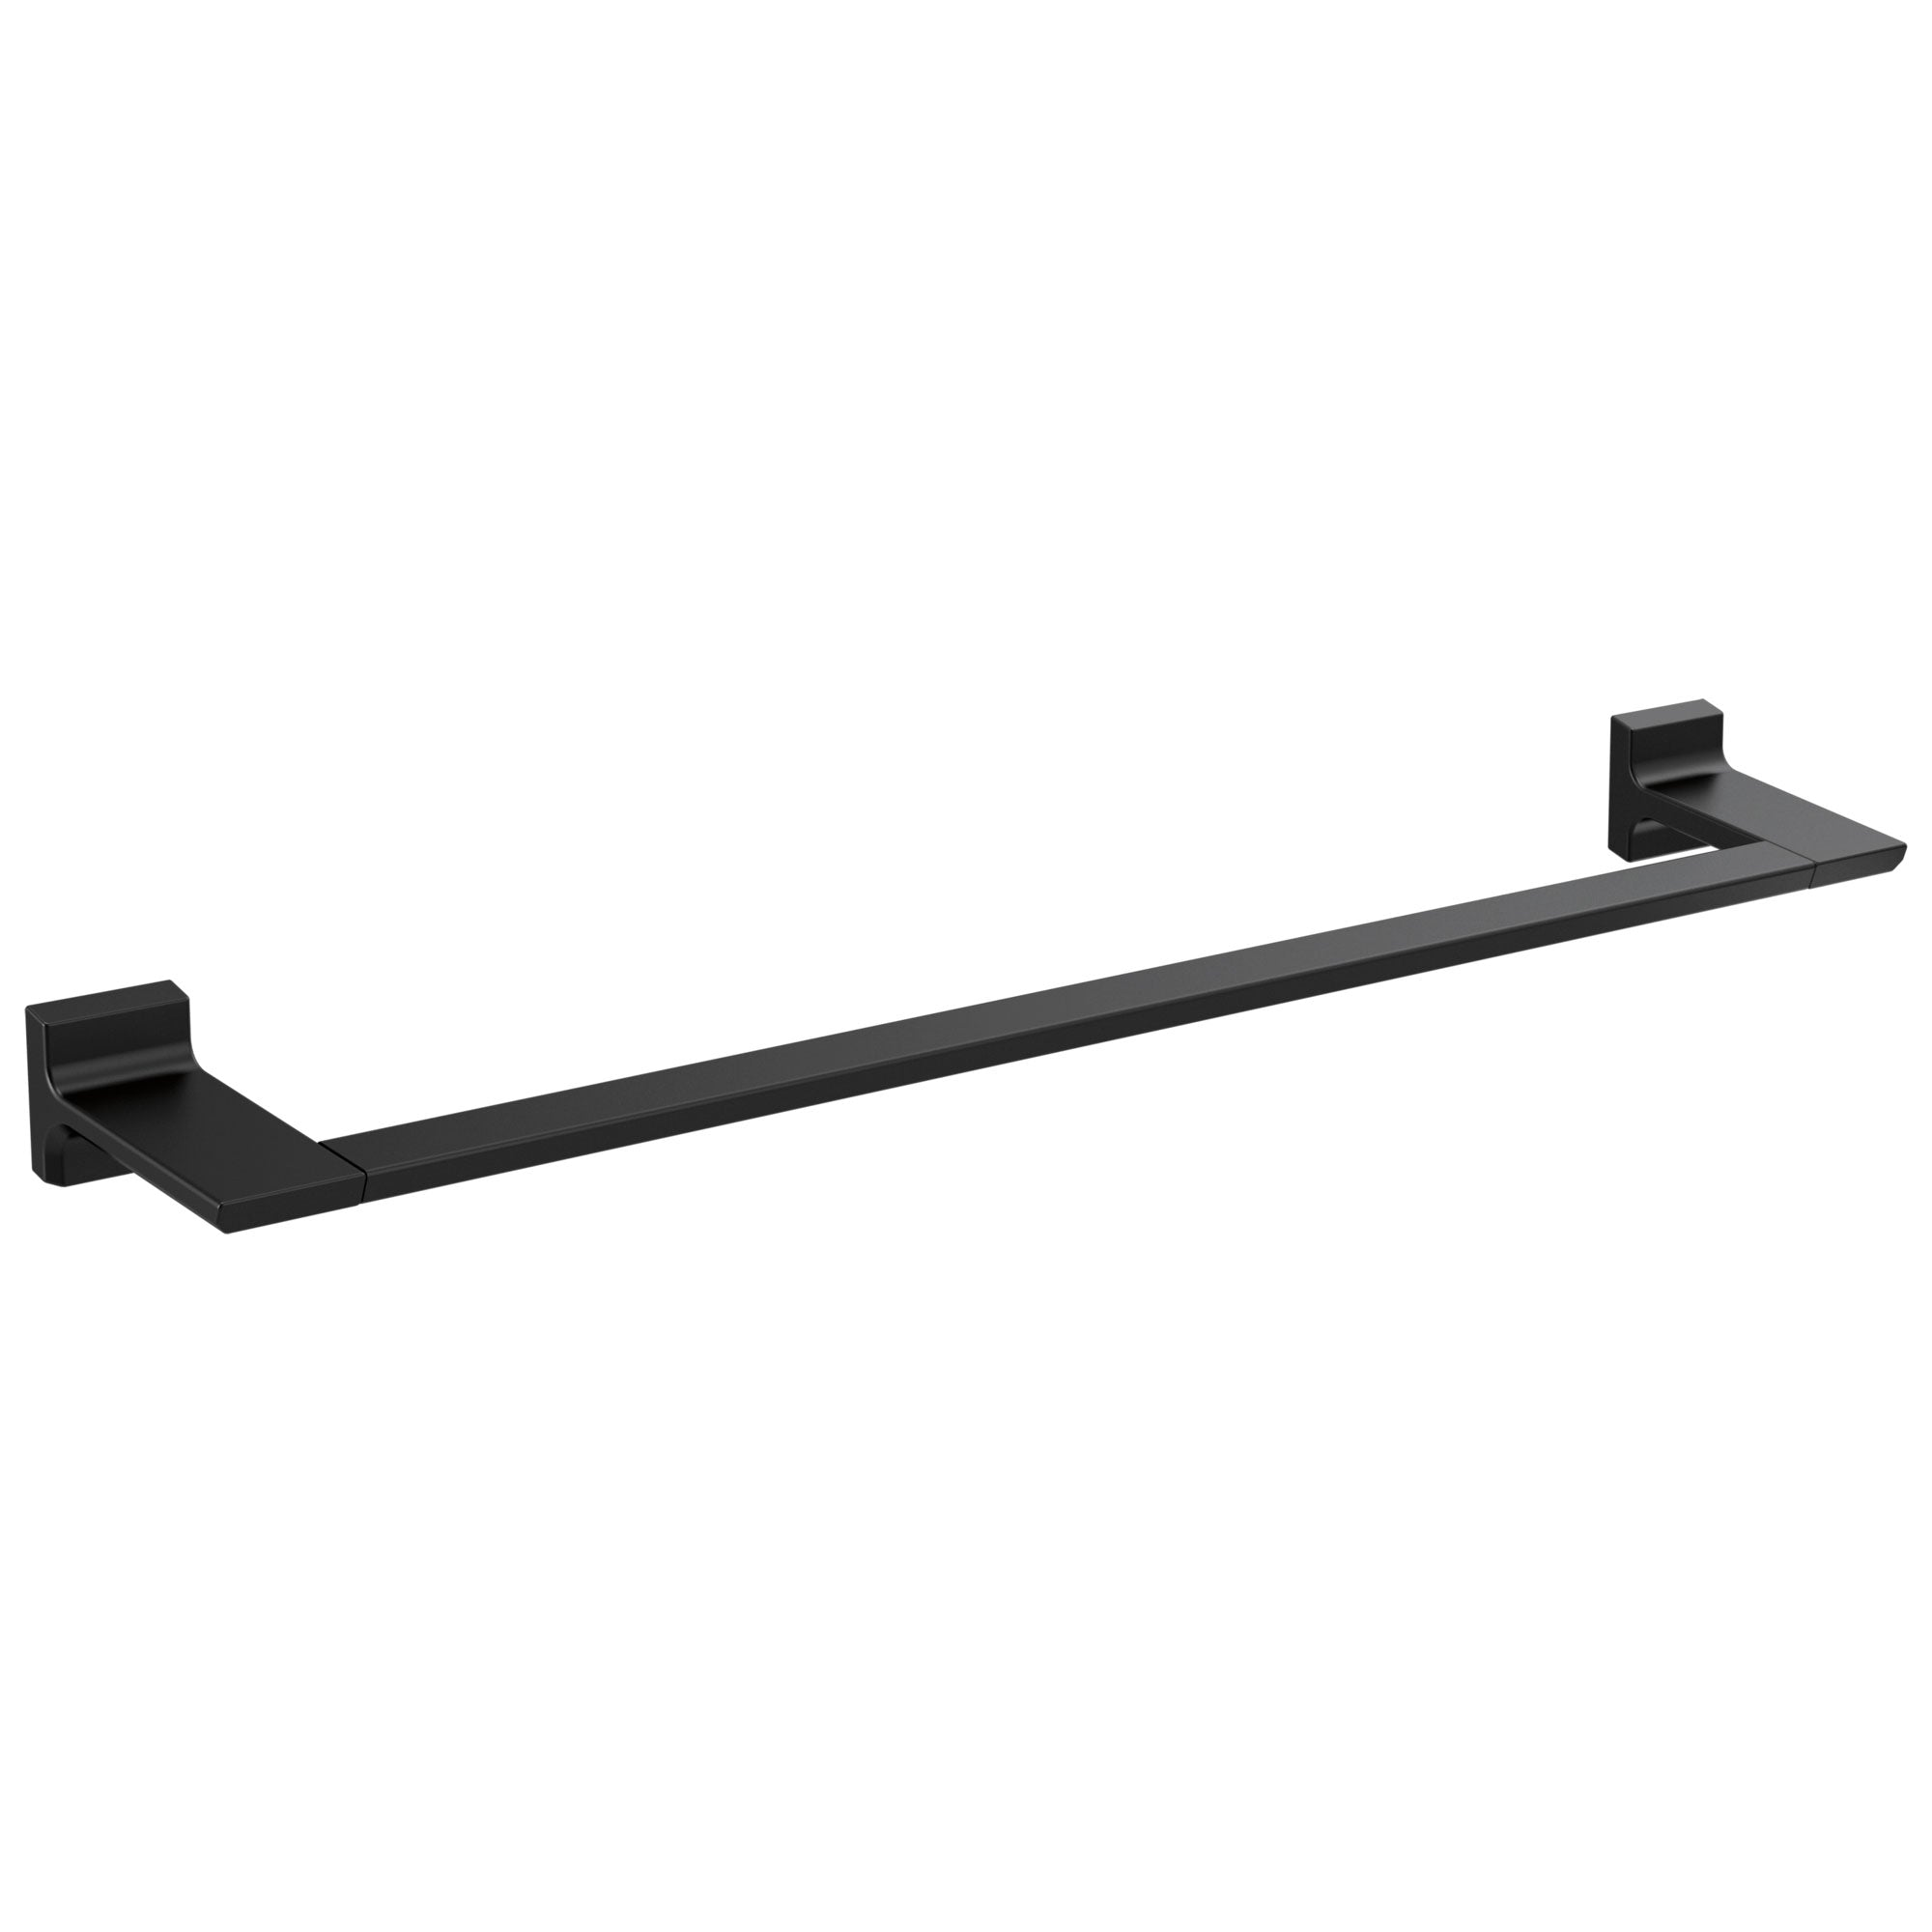 "Delta Pivotal Matte Black Finish 24"" Single Towel Bar D79924BL"